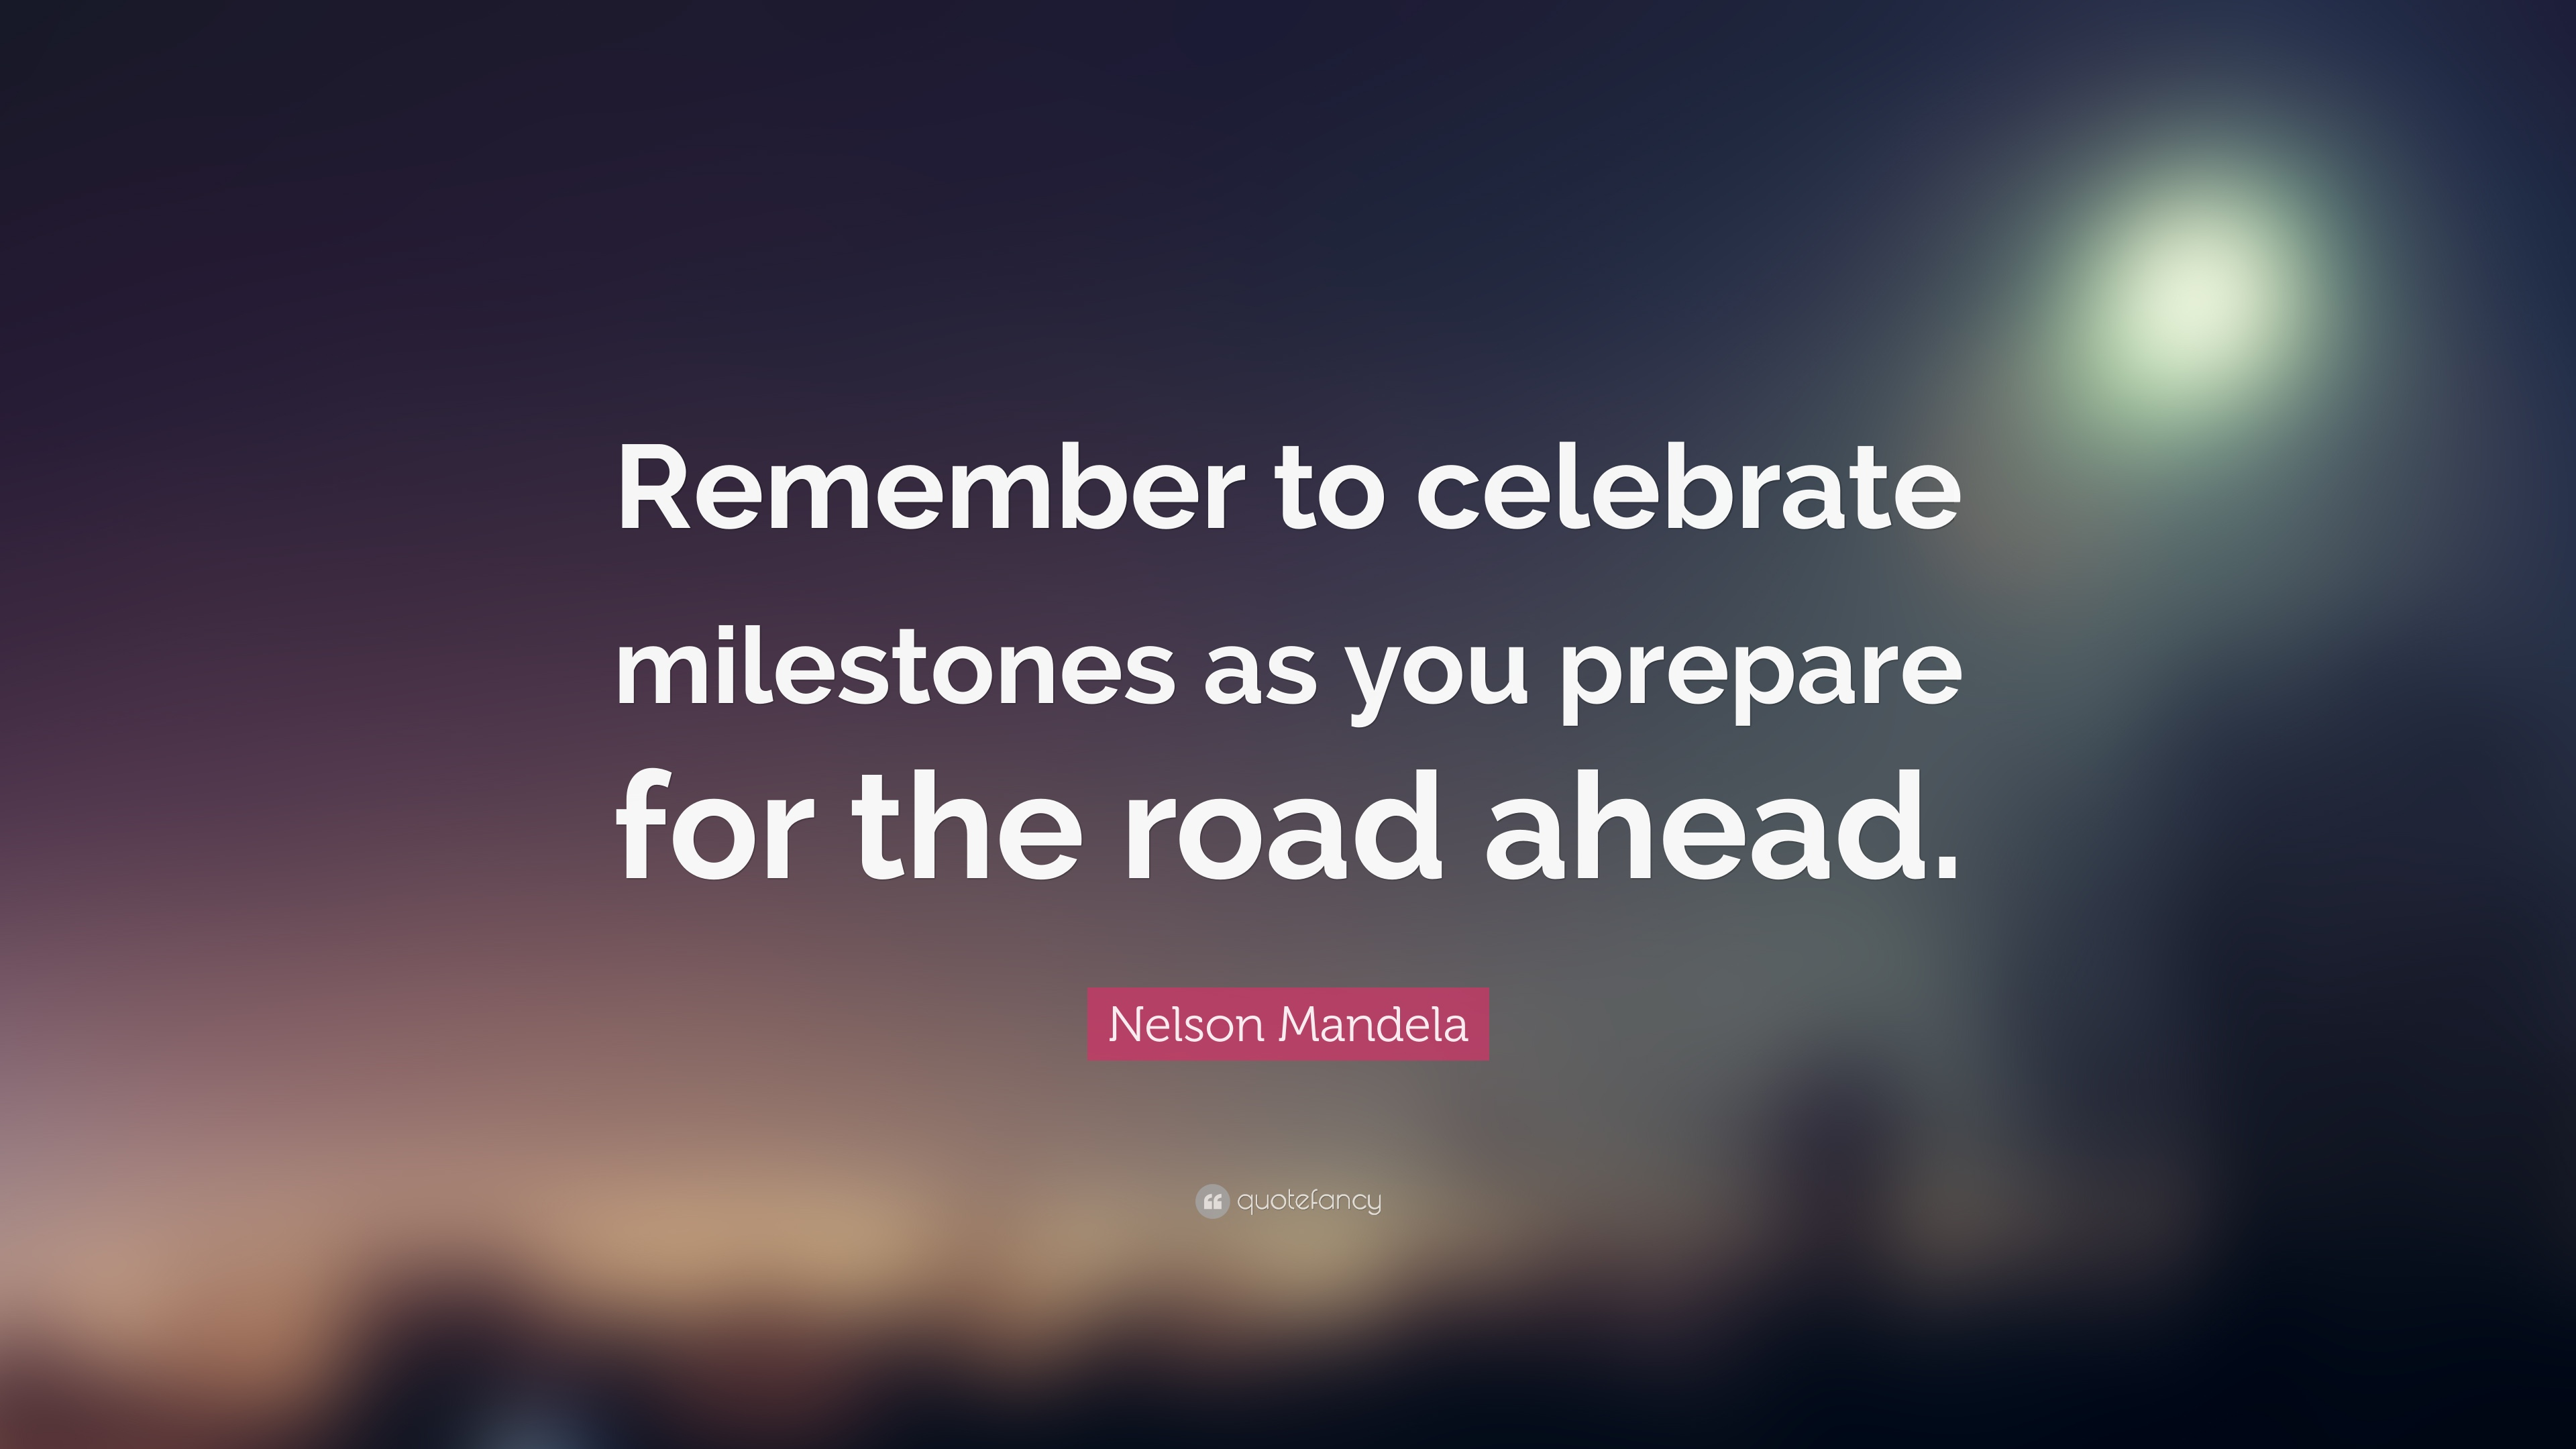 Nelson Mandela Quote Remember To Celebrate Milestones As You Prepare For The Road Ahead 15